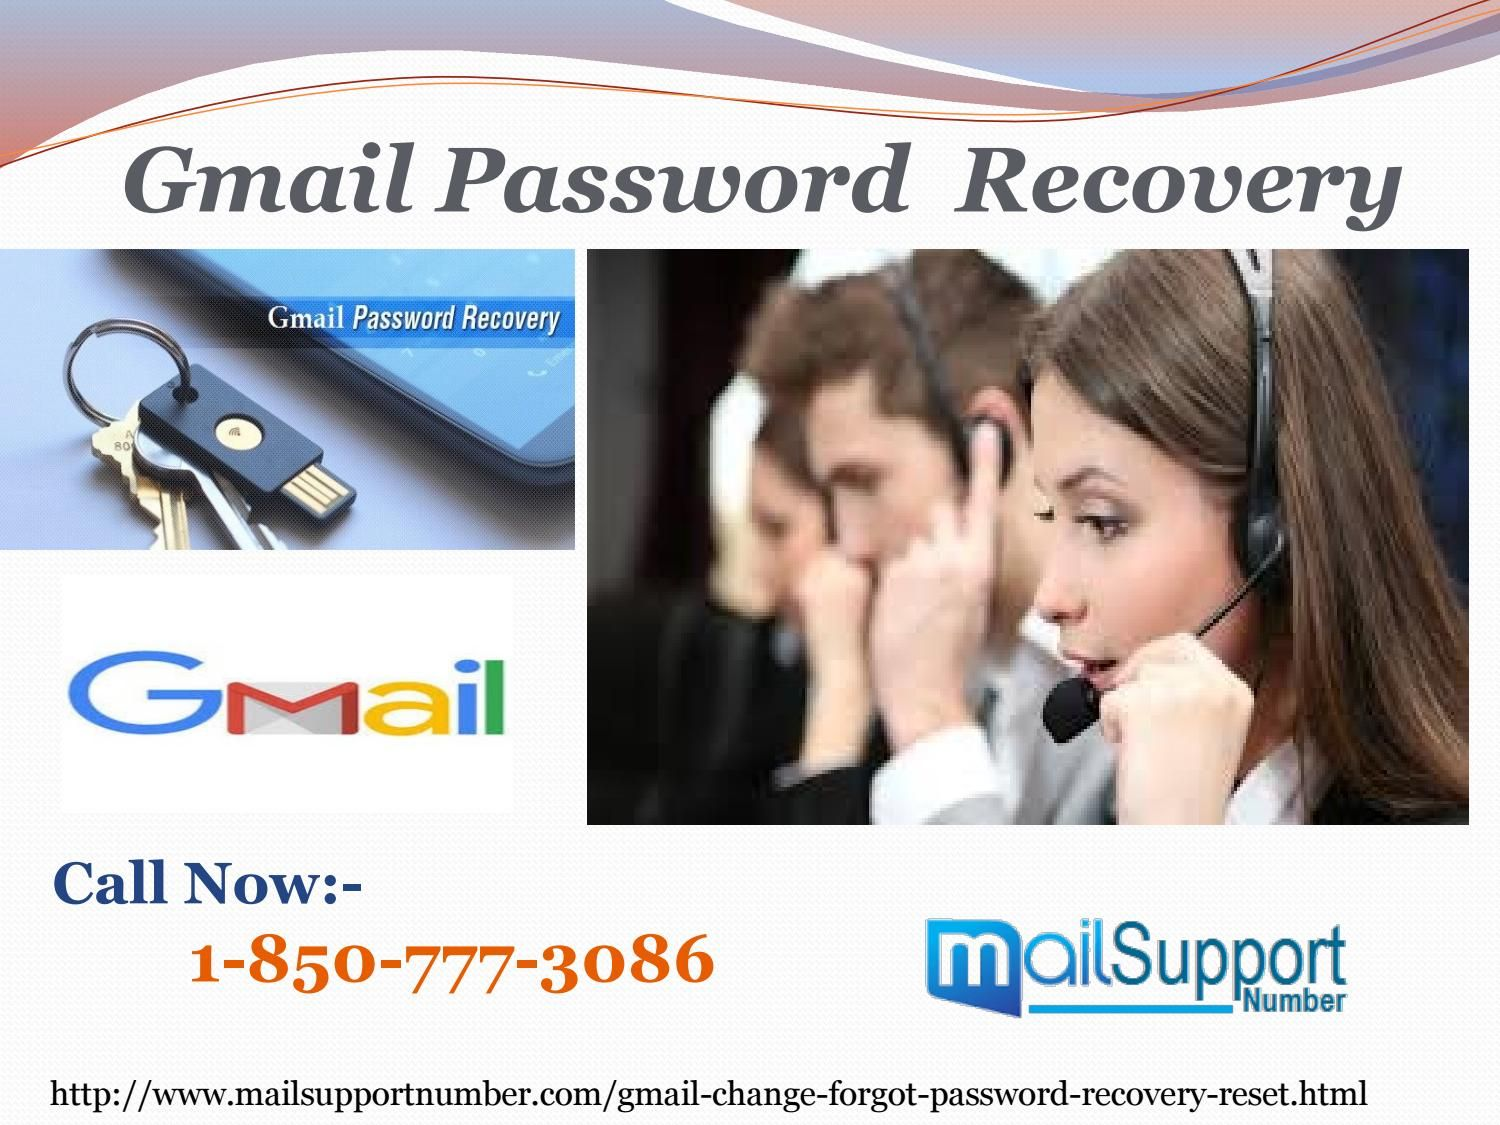 What can be done if getting failed in Gmail Password